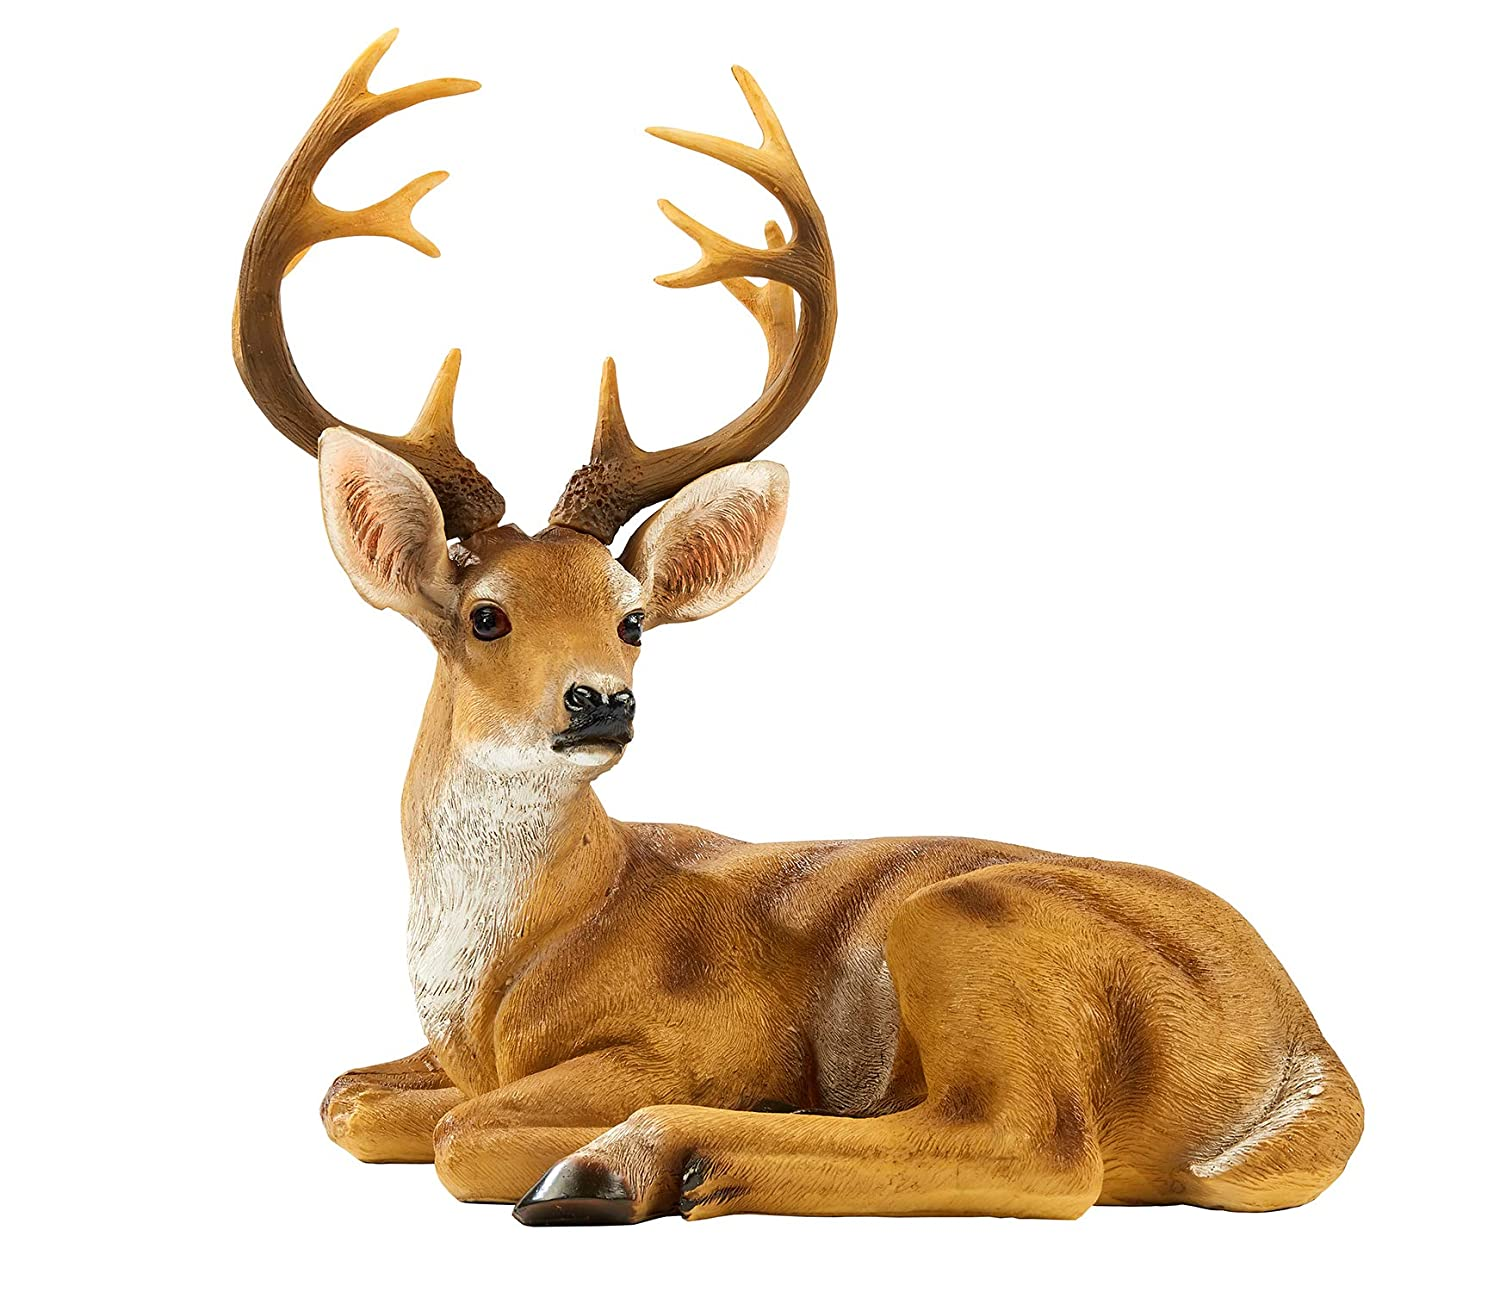 JHVYF Small Buck Statuary 12 Point Resin Deer Statue Garden Lying Sculptures Cabin Animal Figurines Lodge Art Décor for Indoor Outdoor Home Or Office